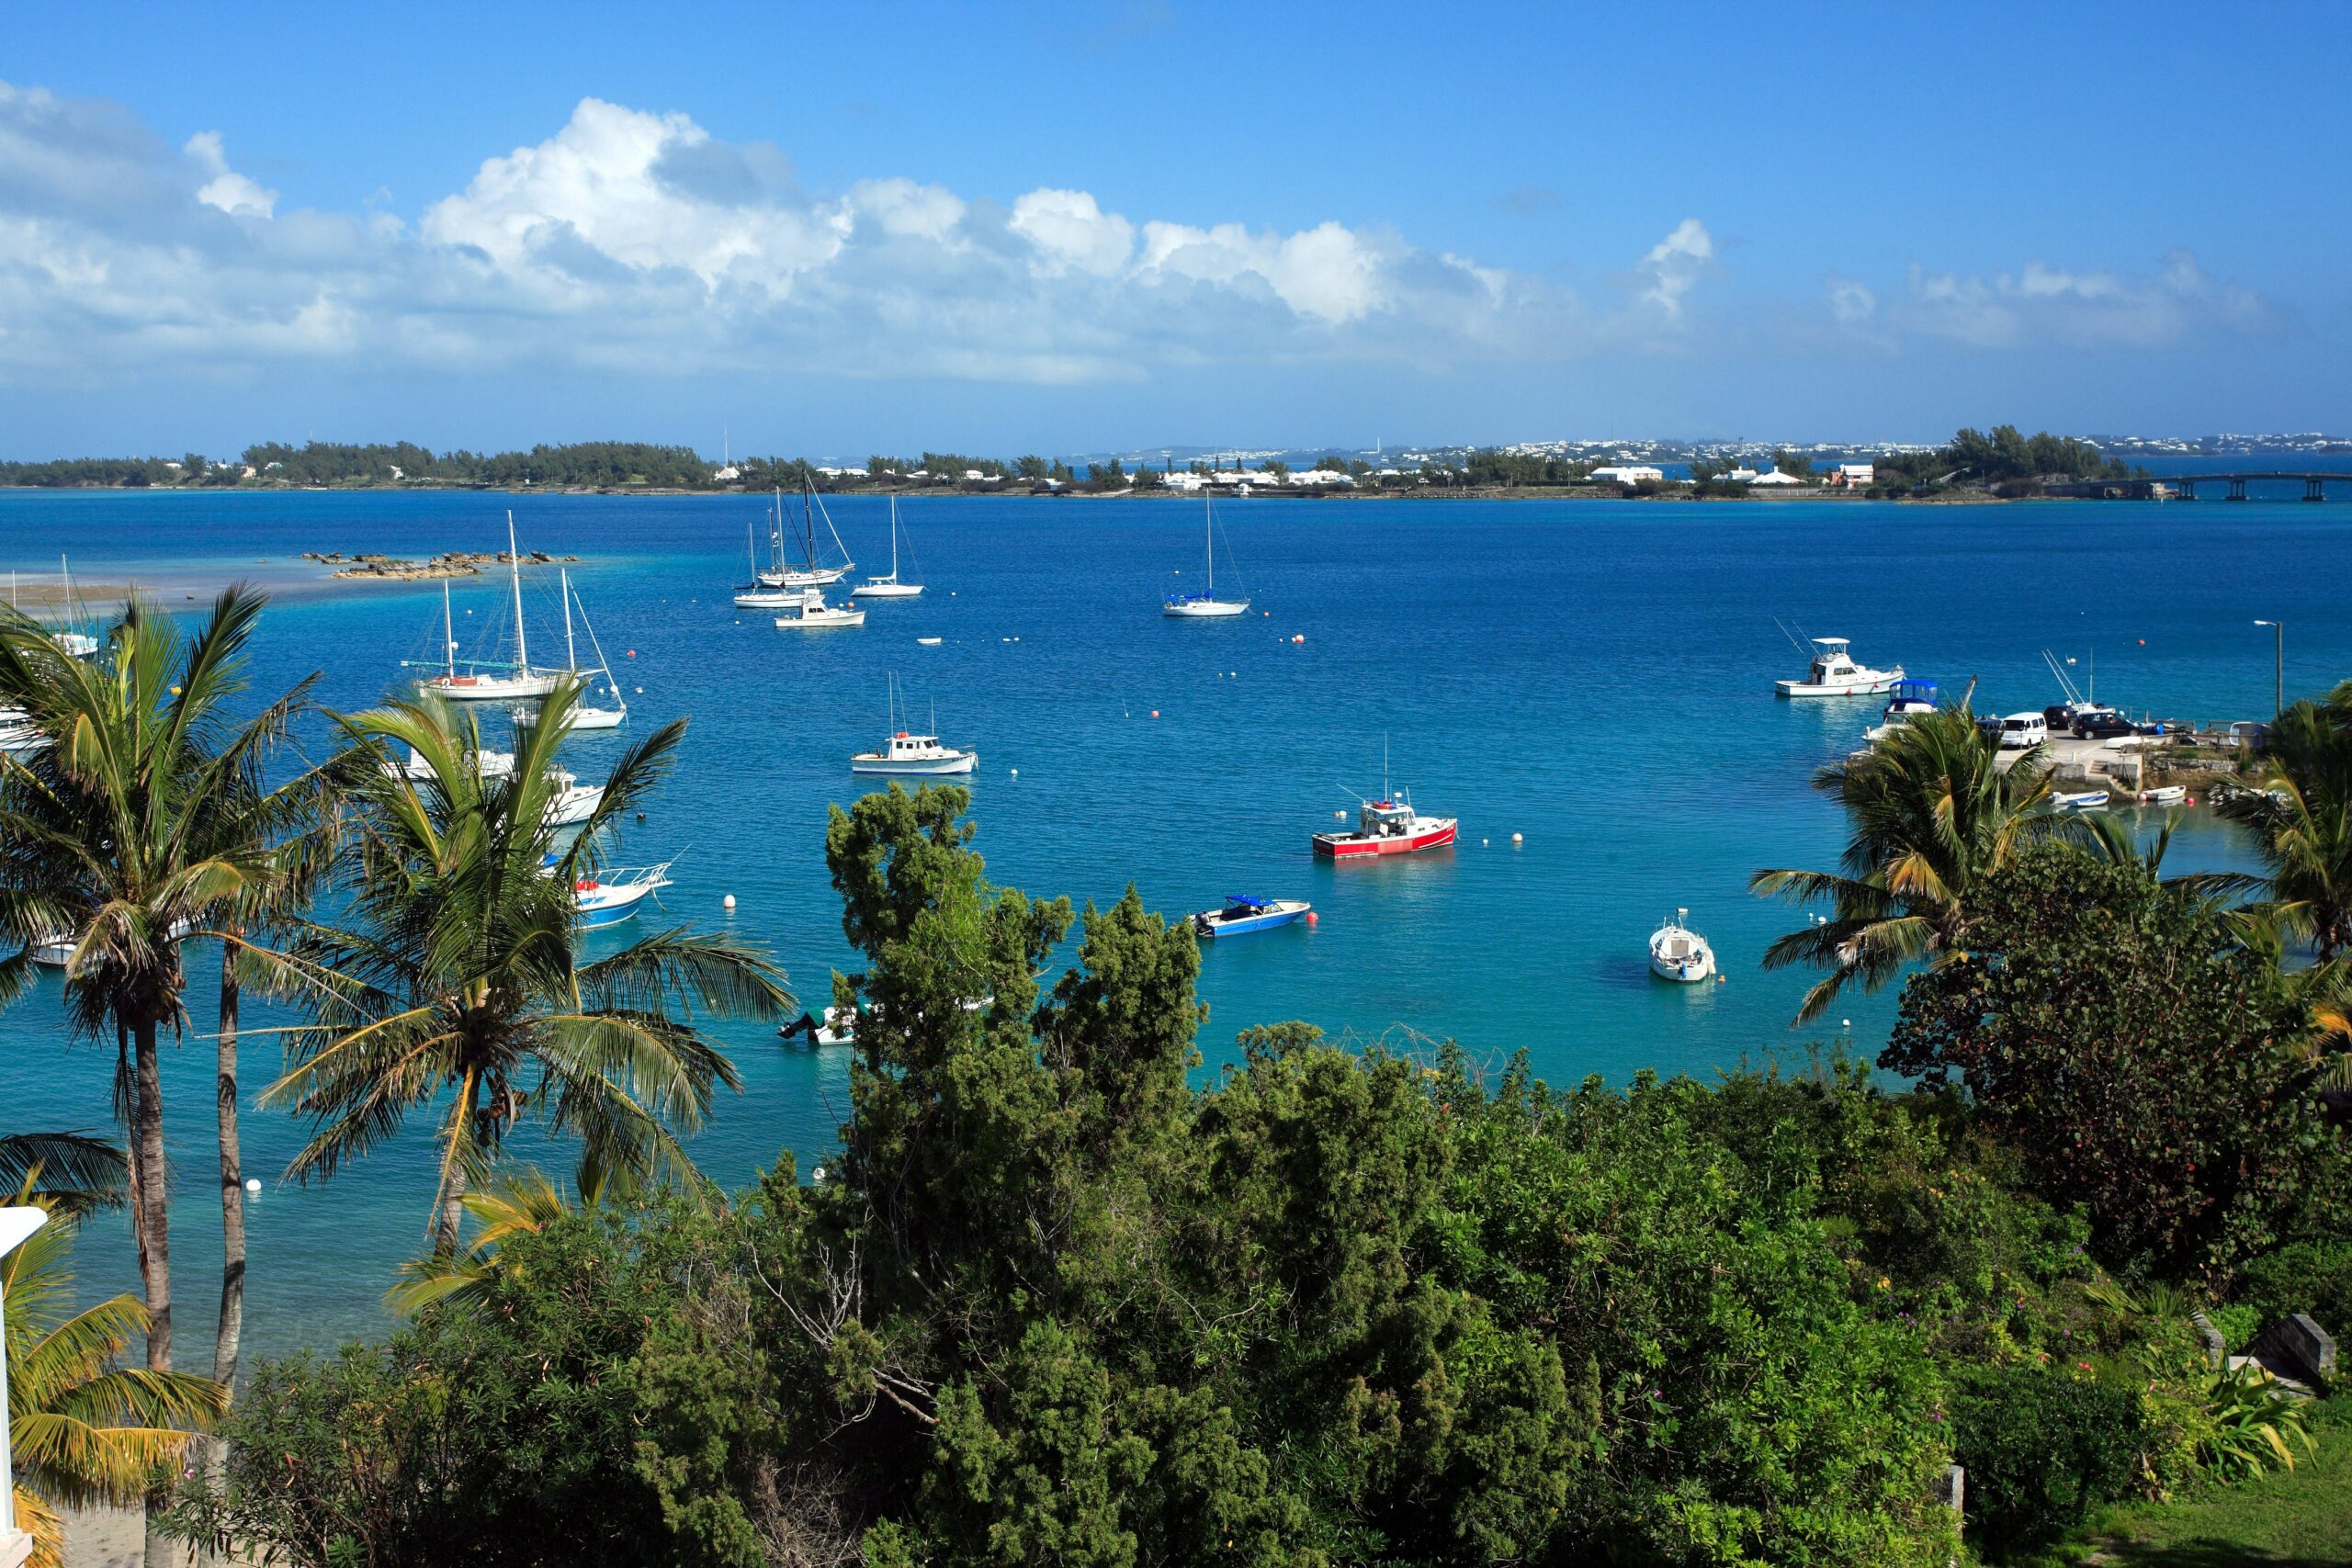 CDC Adds New Destinations to Highest Travel Warning Level, Including Bermuda and Antigua